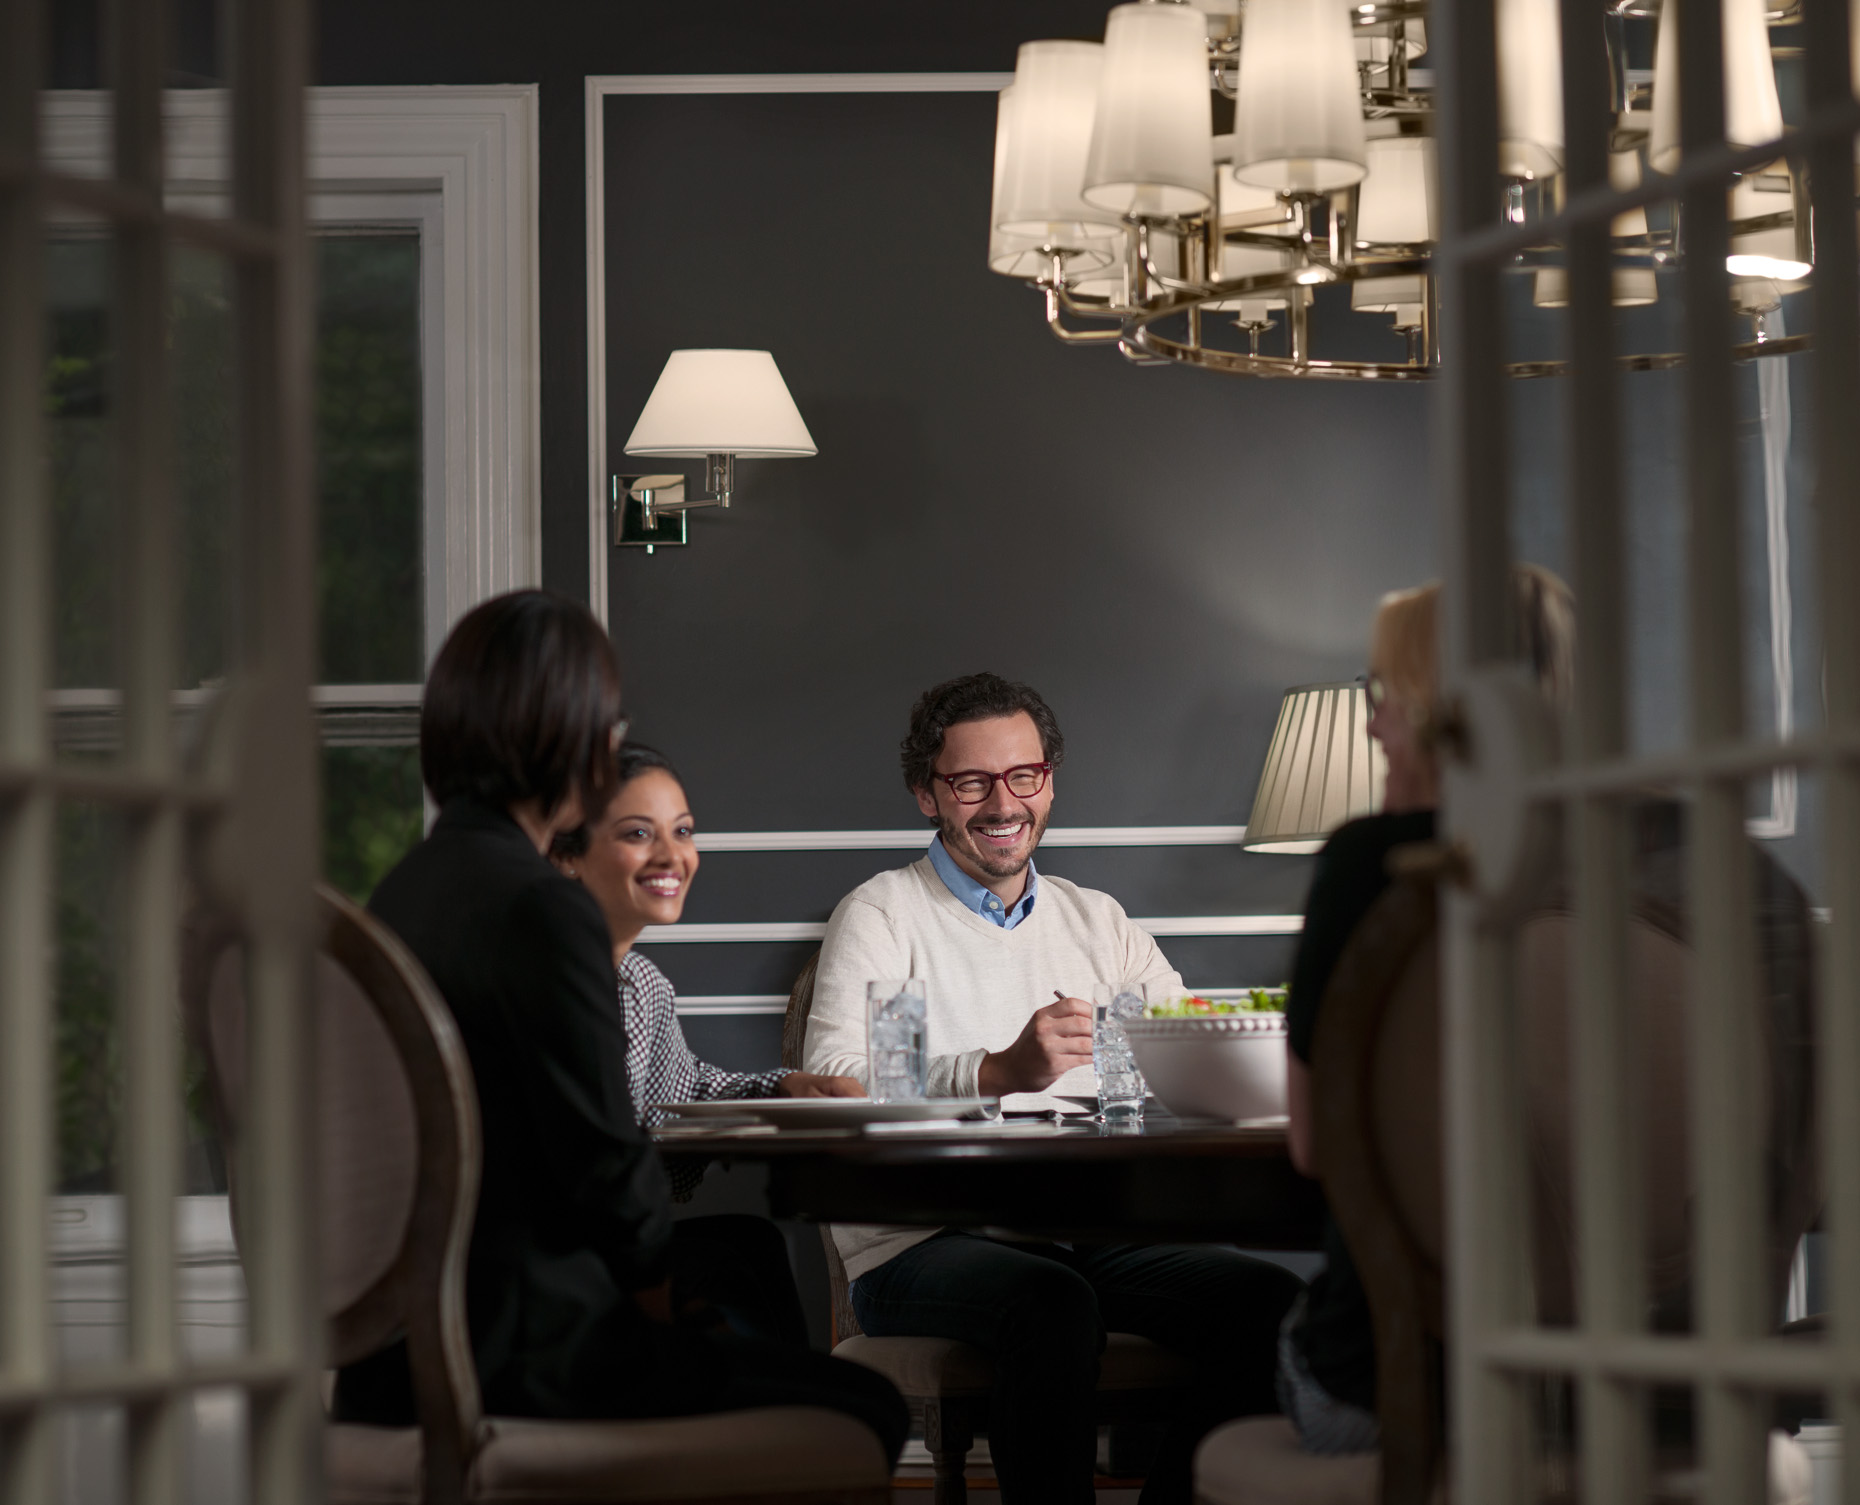 Dinner Friends | Philips LED | Commercial Photographer